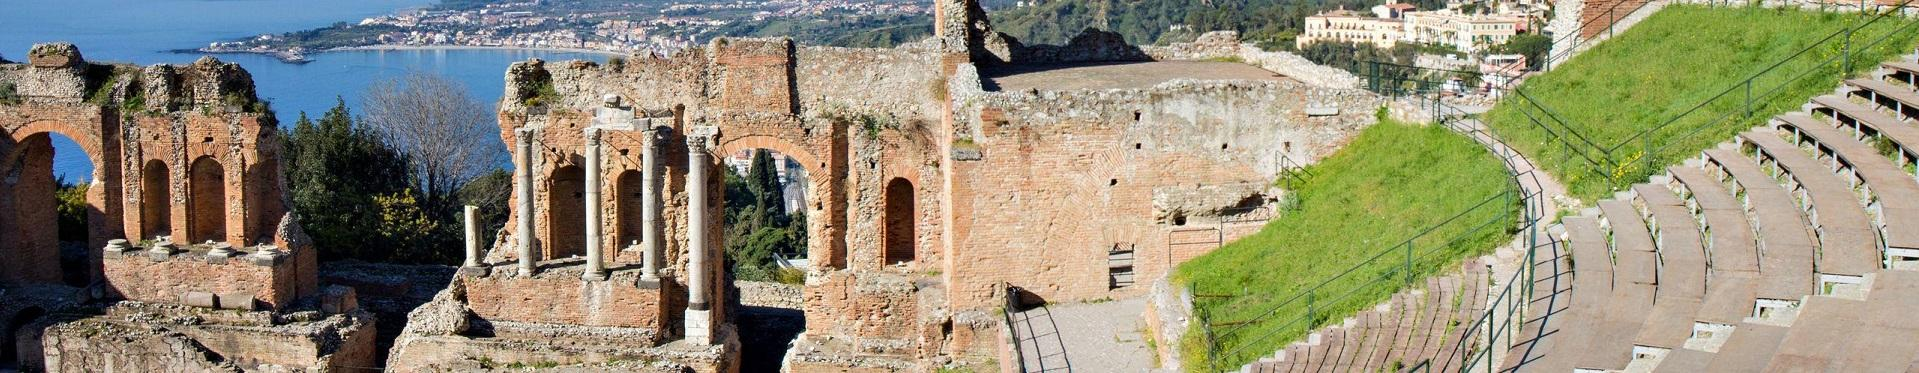 Villas in Taormina